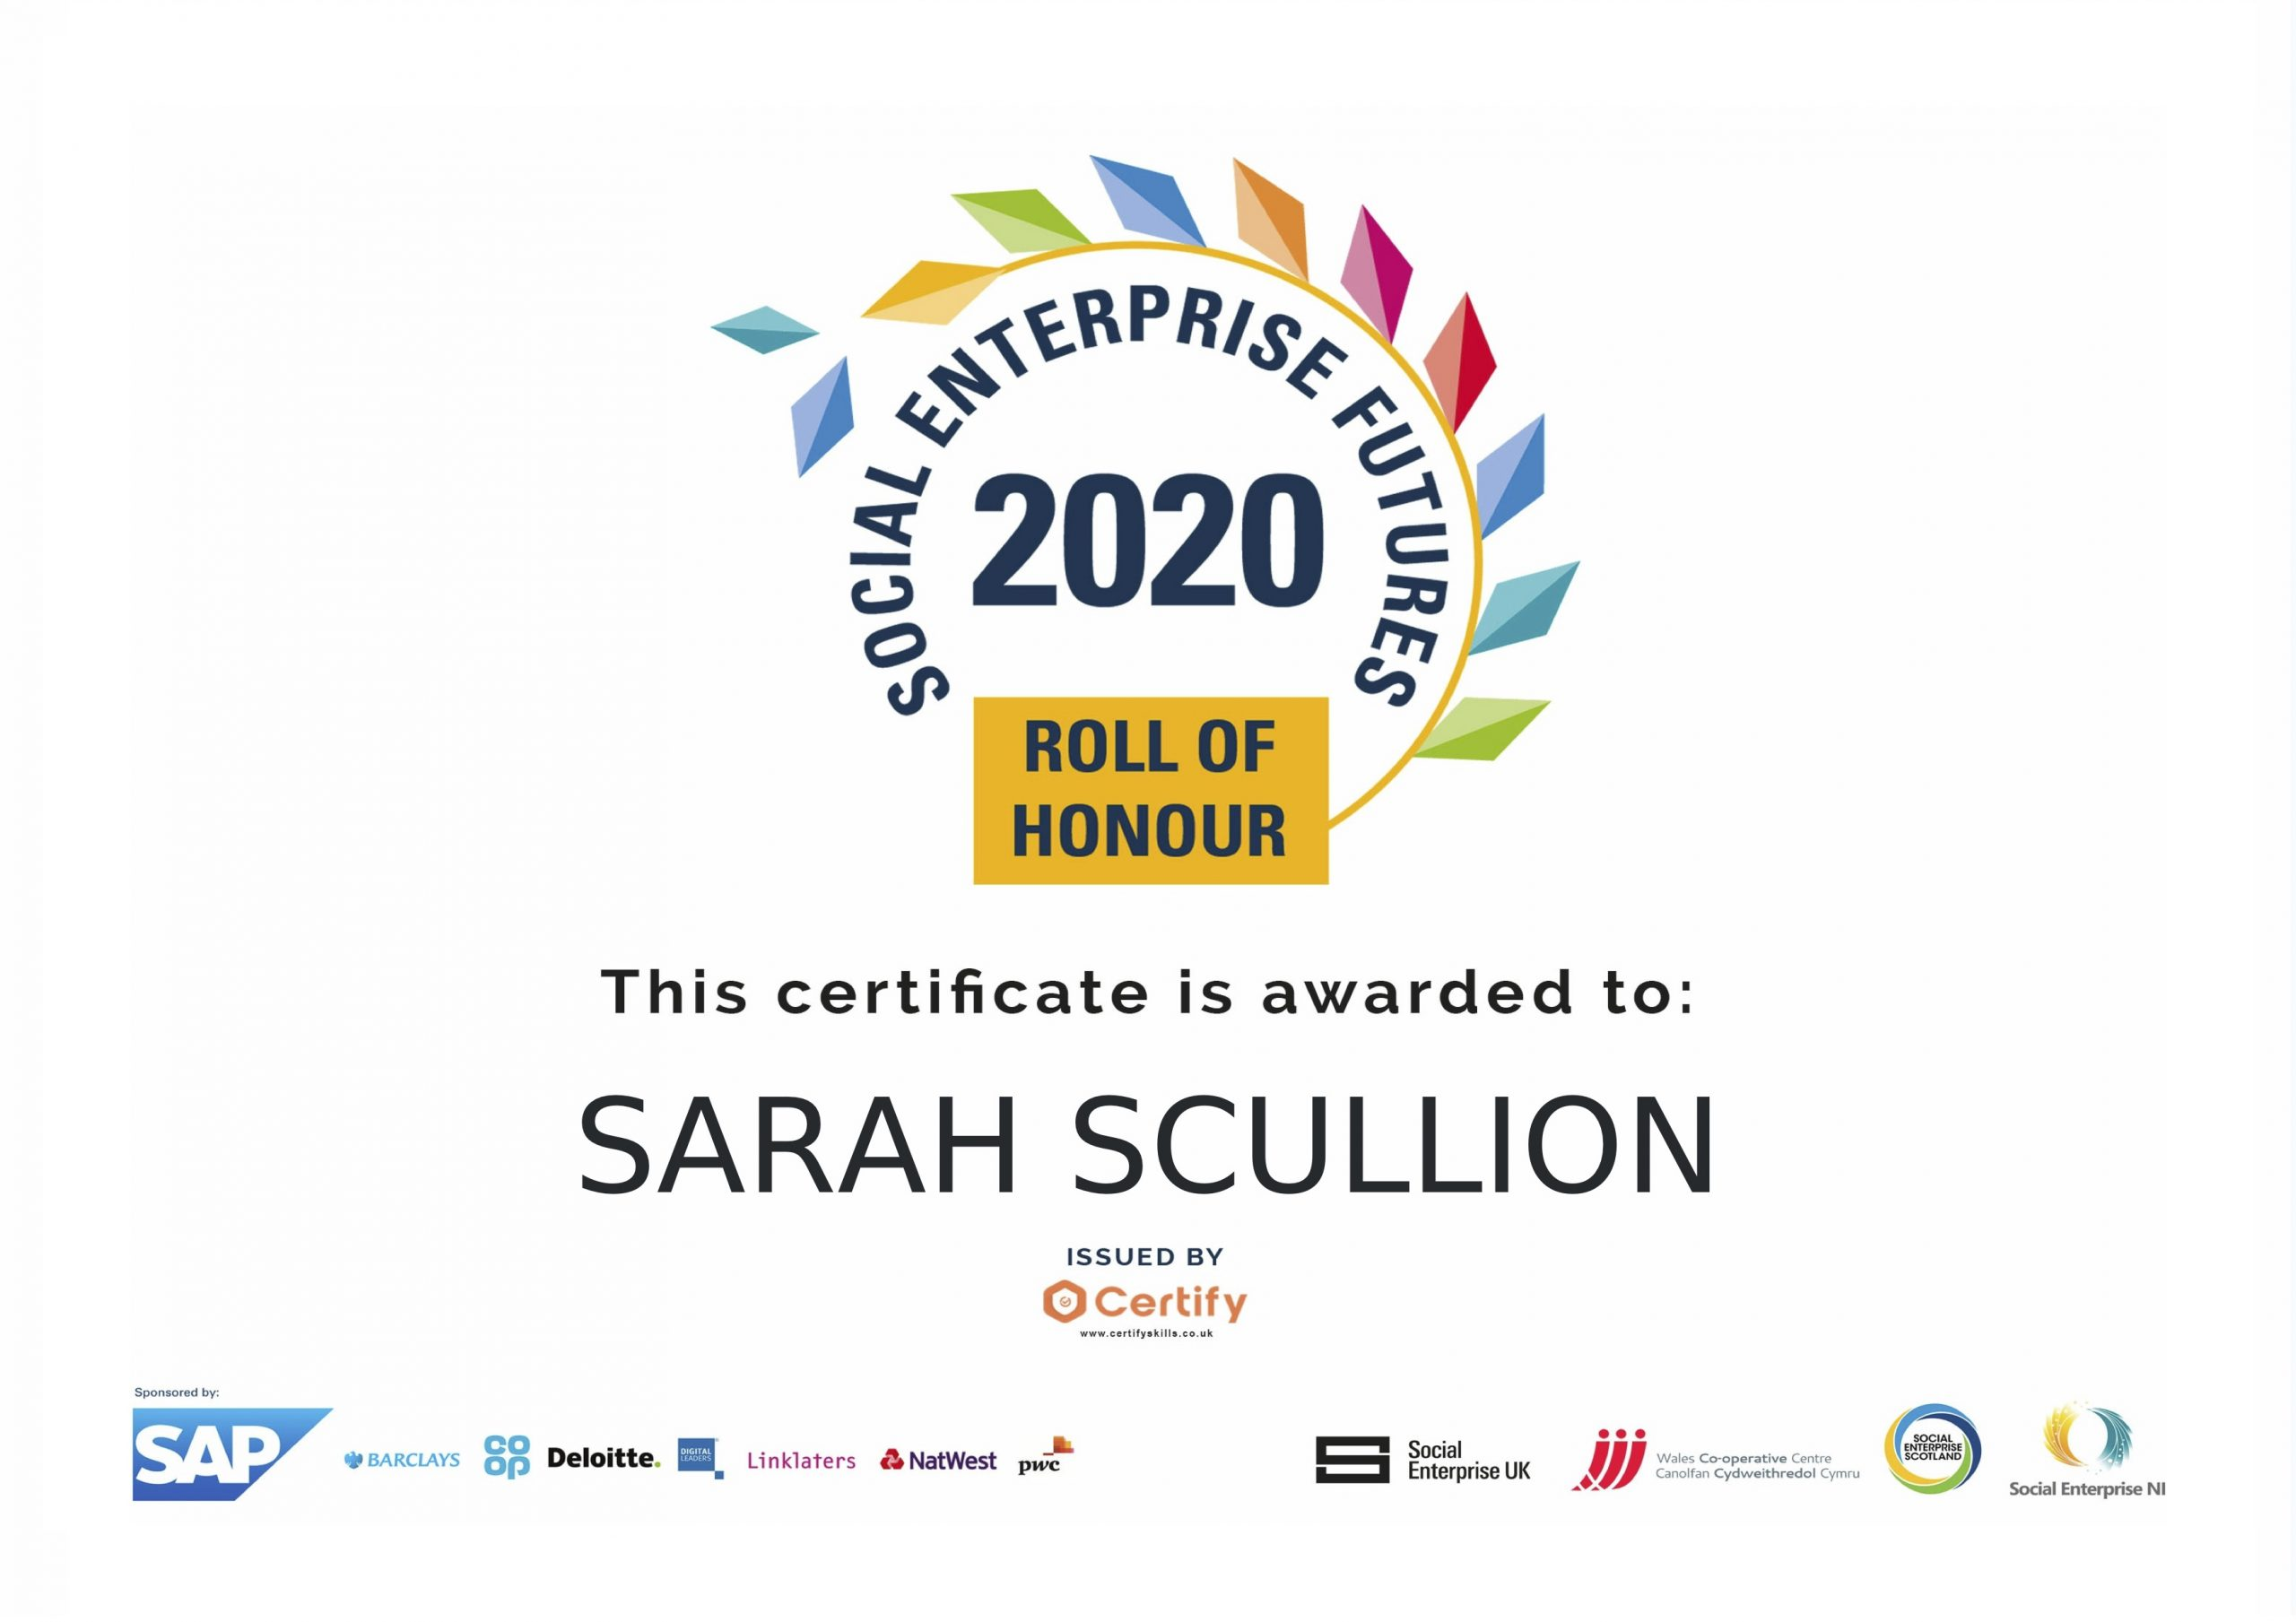 UK Social Enterprise Roll of Honour_Sarah Scullion